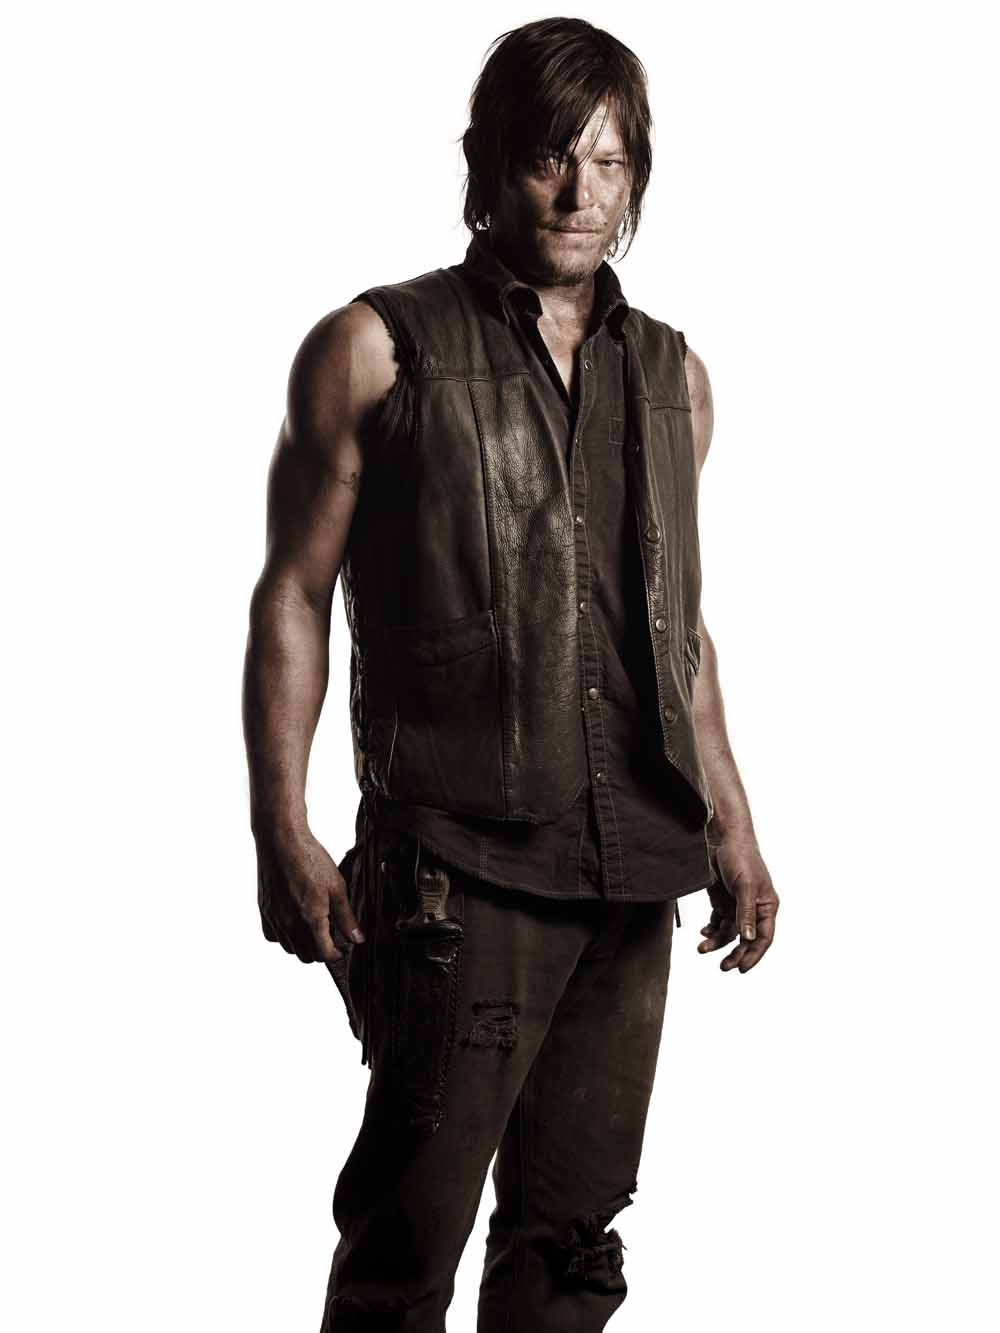 Did Norman Reedus Consider Turning Down the Role of Daryl Dixon? He Says…